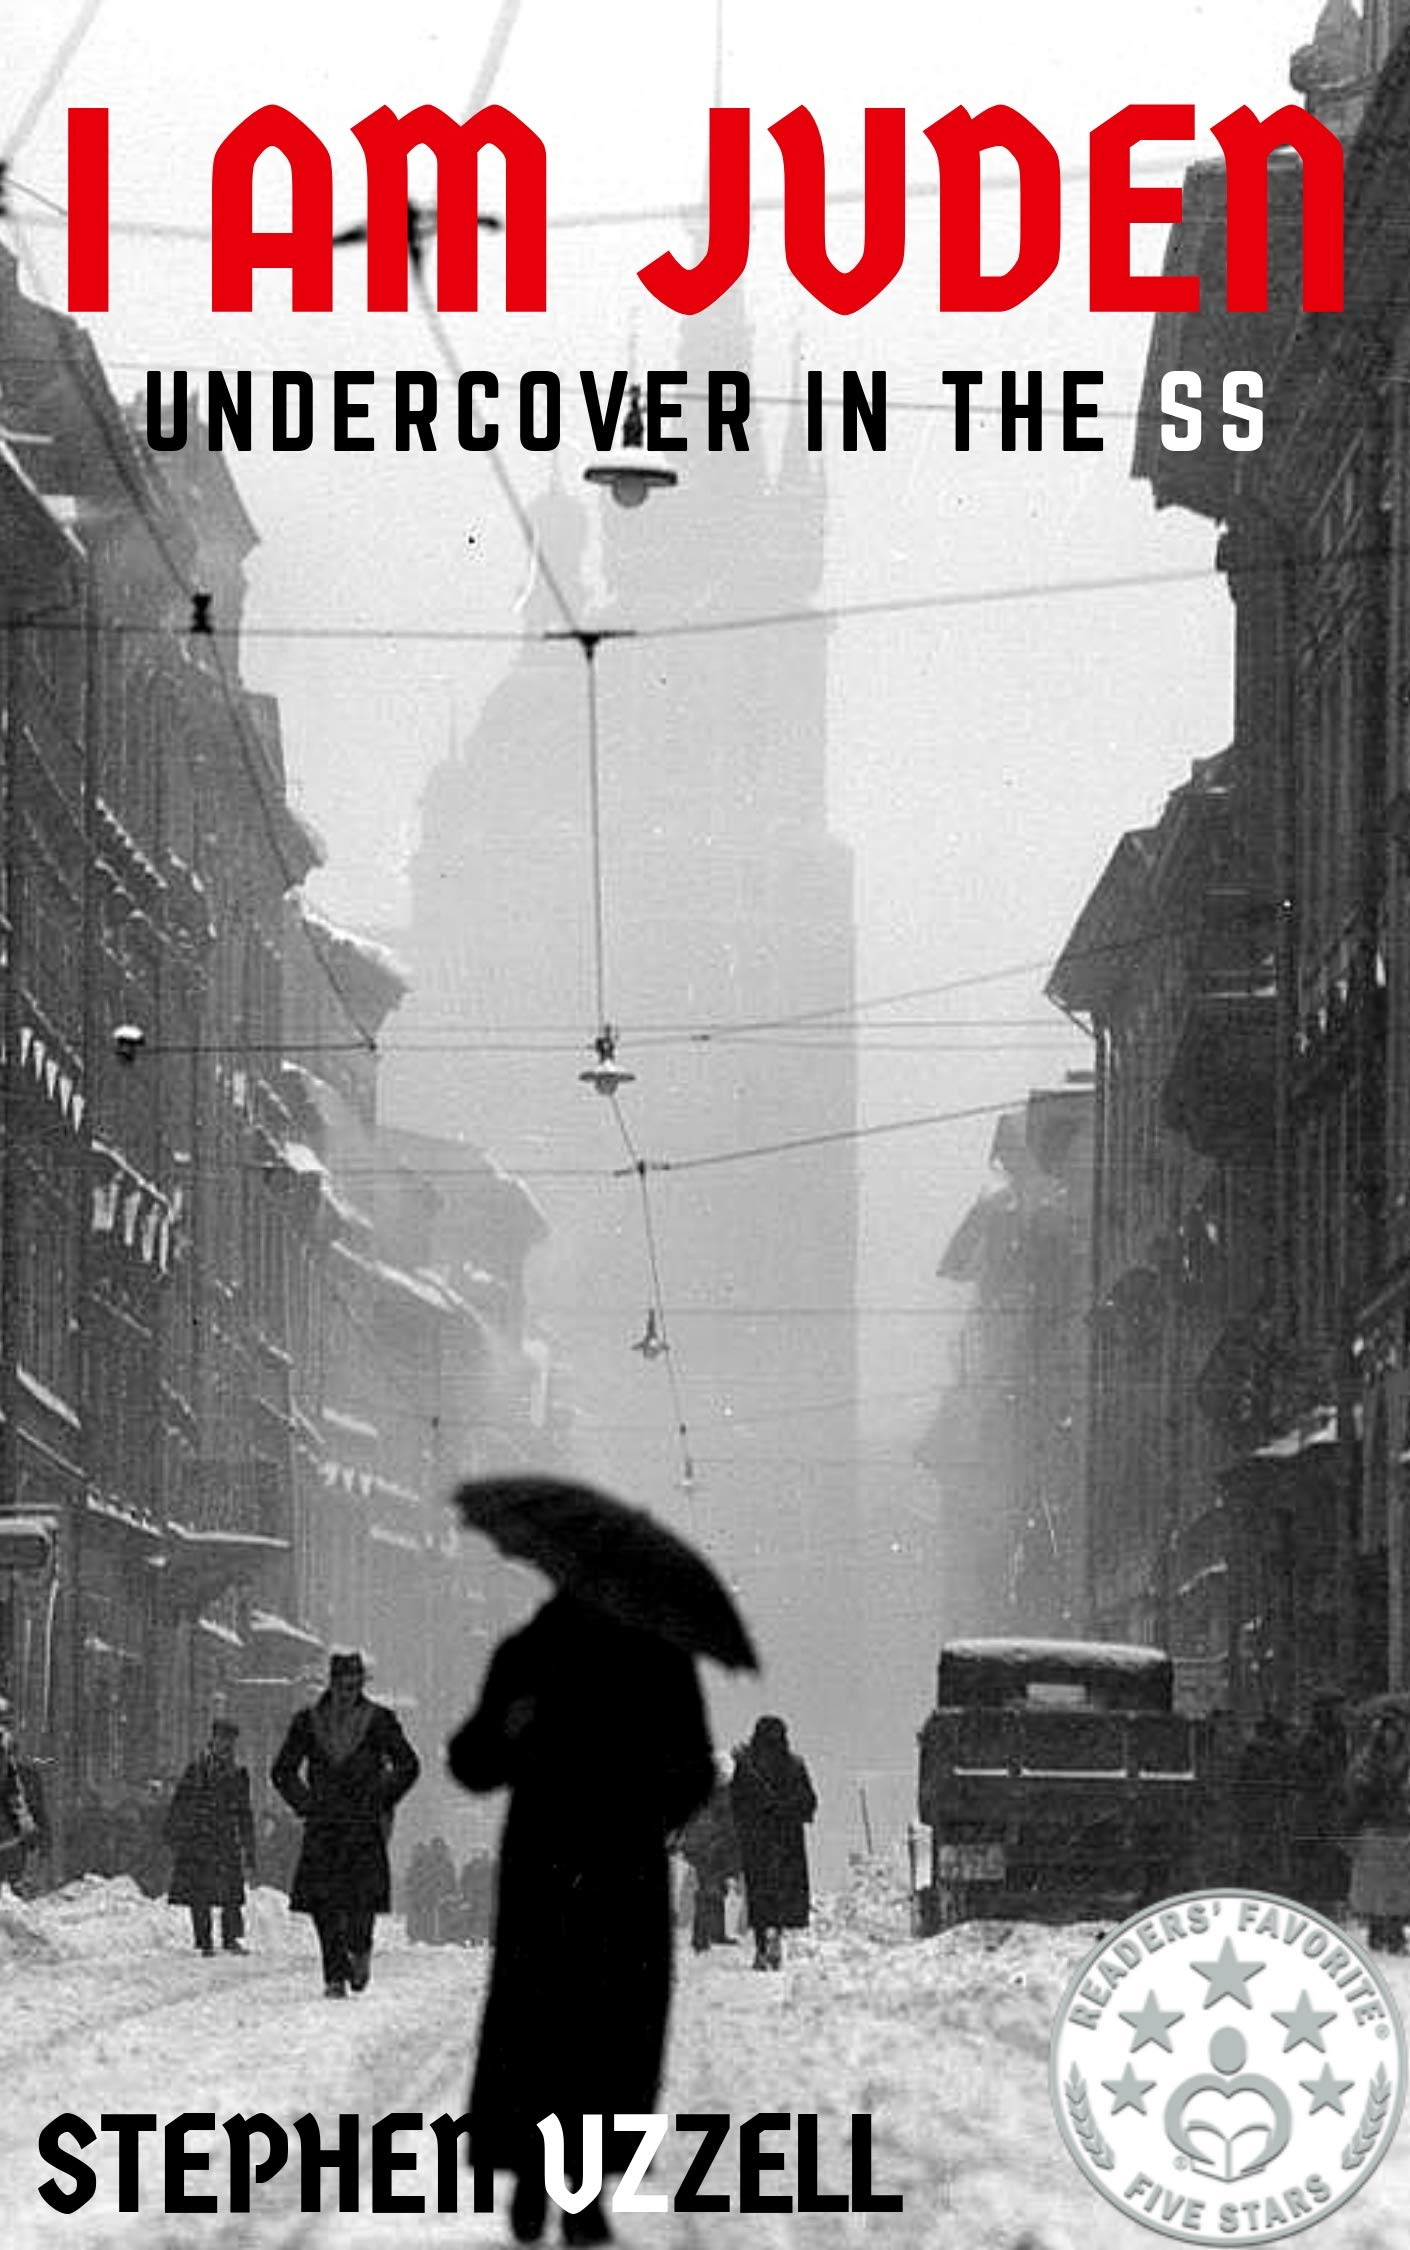 I Am Juden: Undercover in the SS (2nd Edition) por Stephen Uzzell